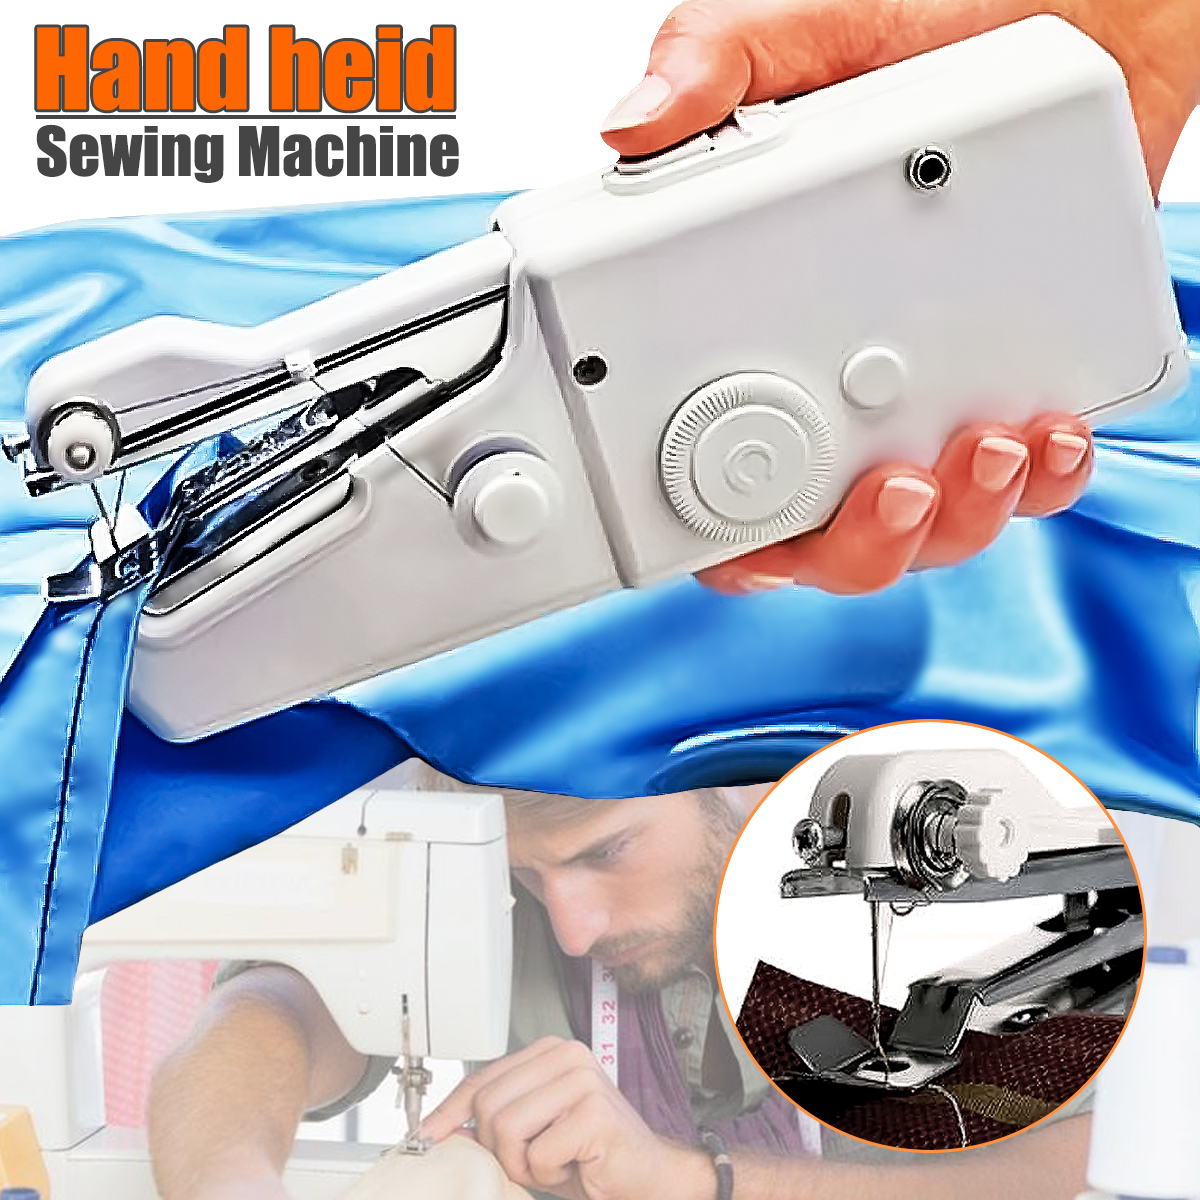 Portable Handheld Stitch sewingtool Sew Cordless Handy Sewing Machine Tool Universal for DIY Clothing Denim Apparel Sewing Fabric Zippers Crafts Supplies (without batteries)